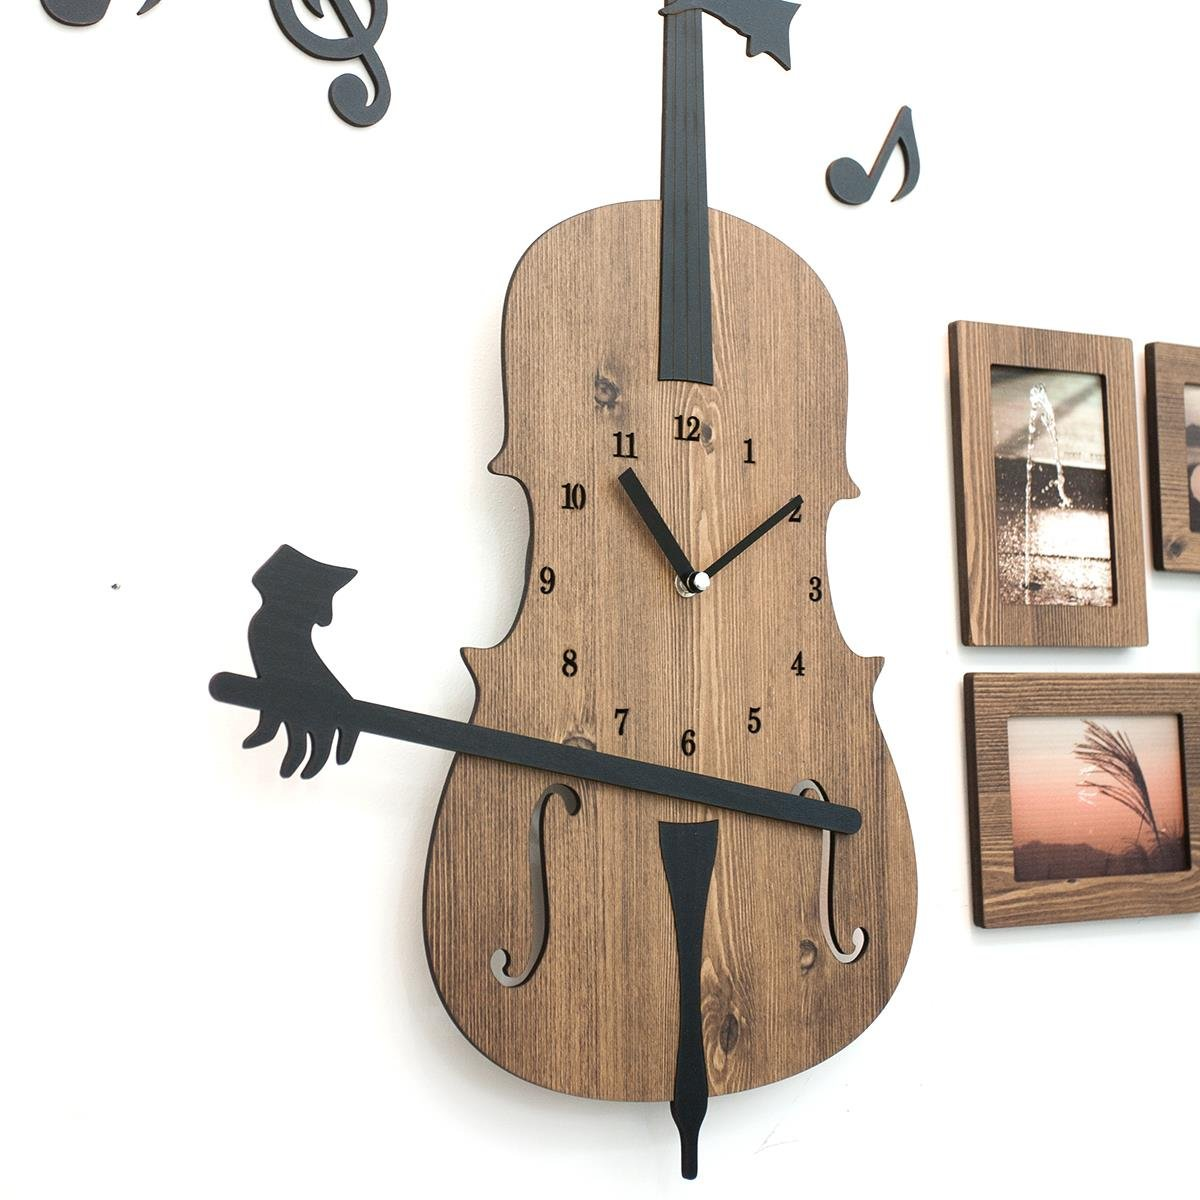 Moromall Invisible Cellist Playing The Cello Handcrafted Non Ticking Silent Wall Clock Music Decor